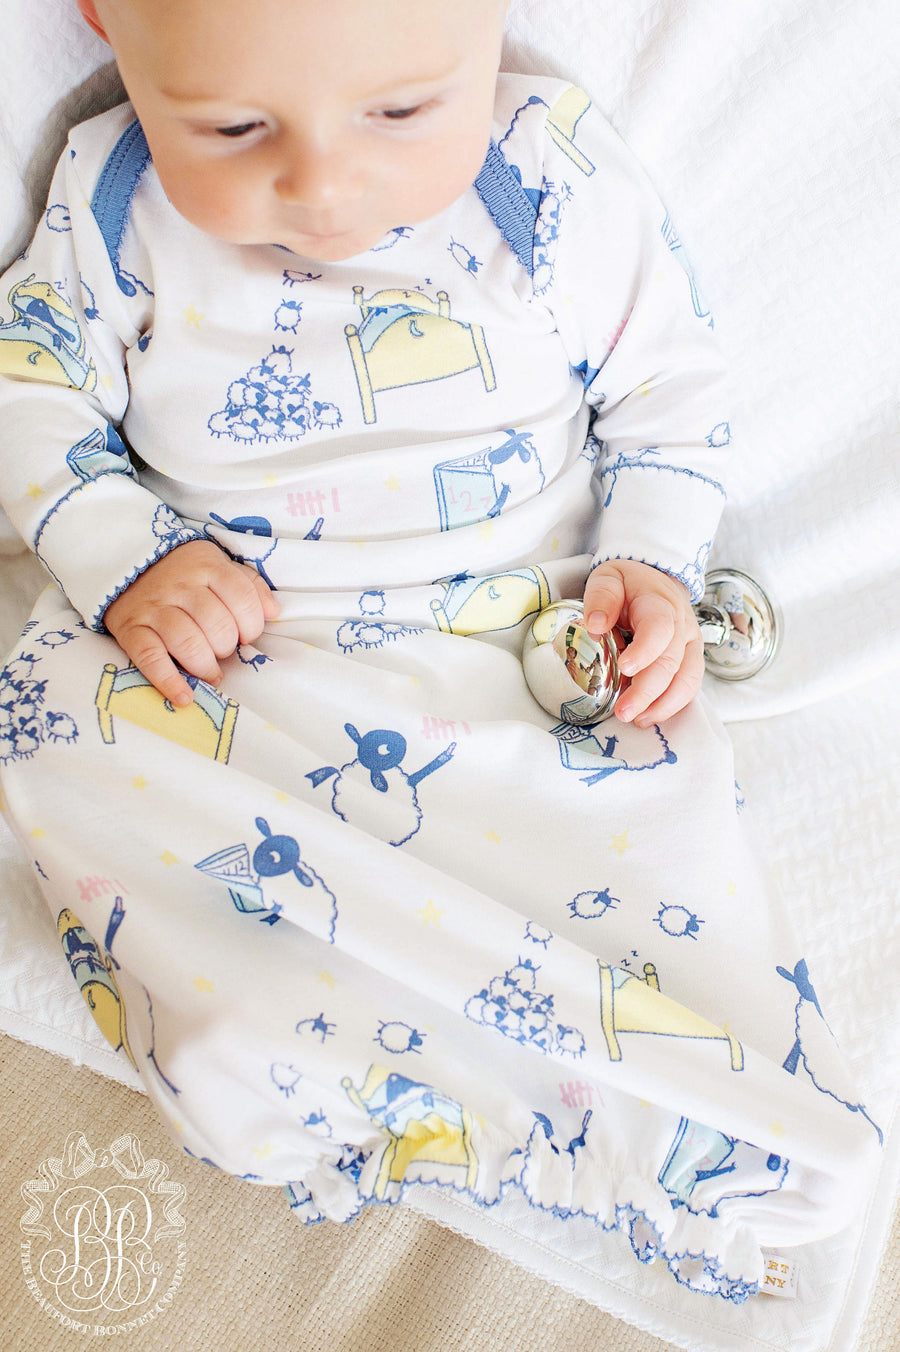 Adorable Everyday Gown - Counting Sheep with Park City Periwinkle